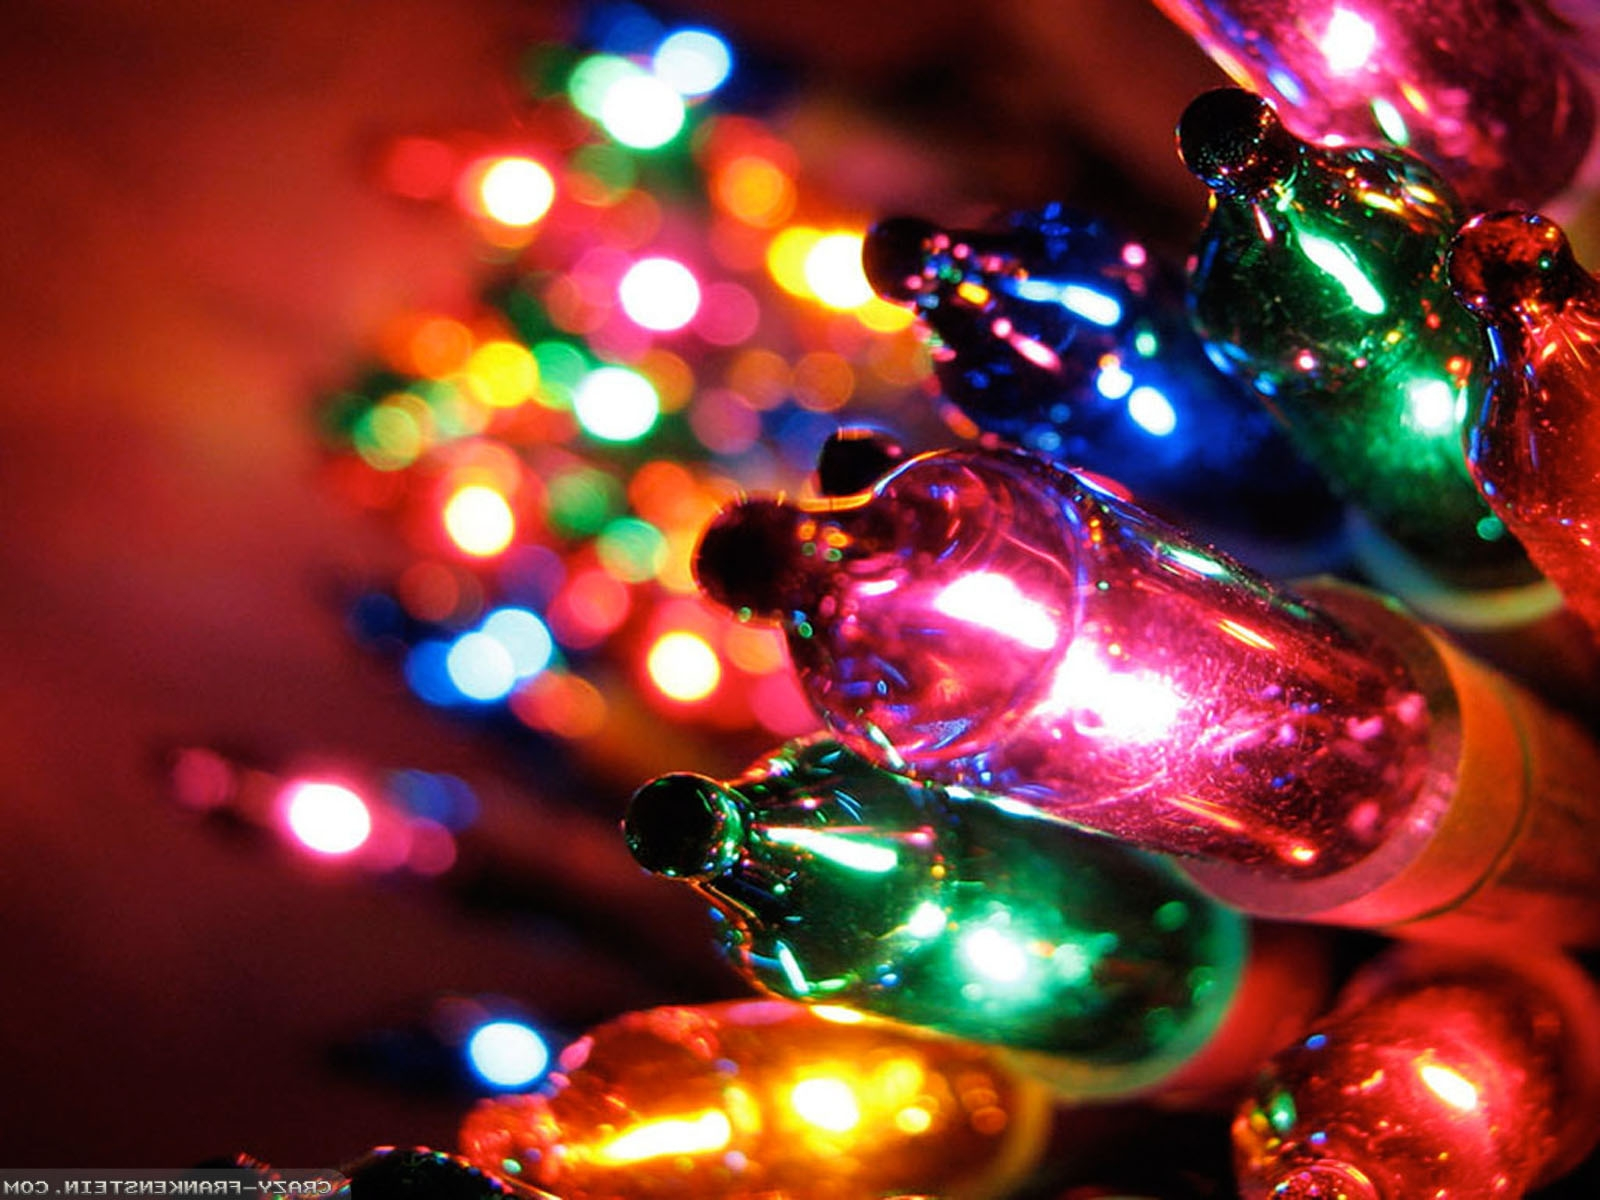 Christmas light wallpapers for desktop wallpapersafari - Desktop wallpaper 1600x1200 ...